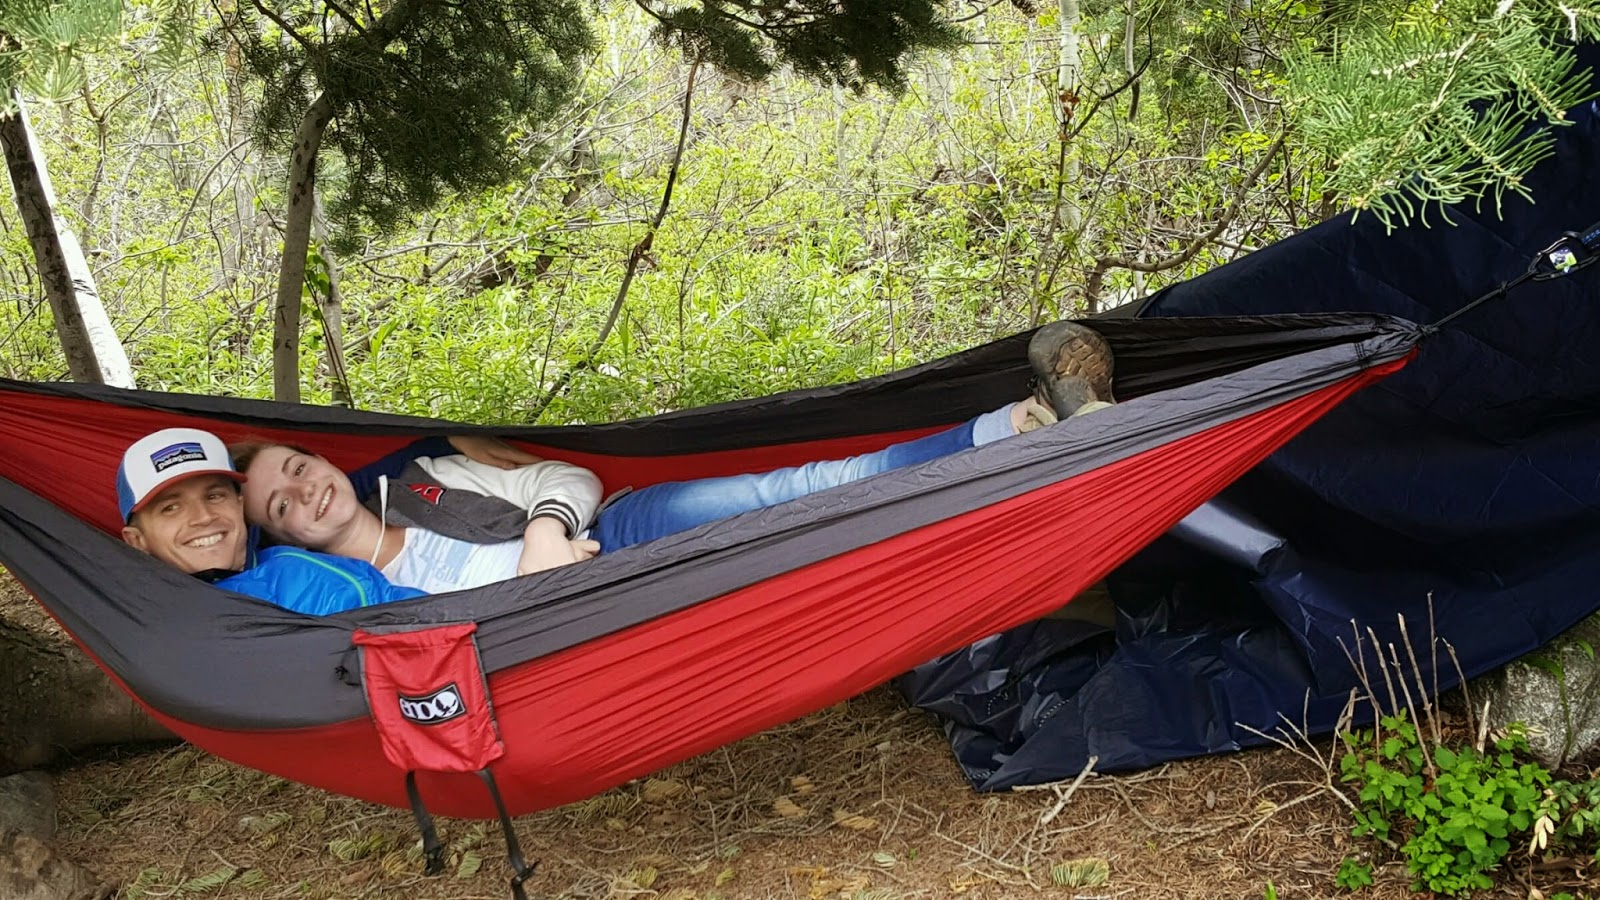 install day double portia eno hammock cozy tips deluxe doublenest